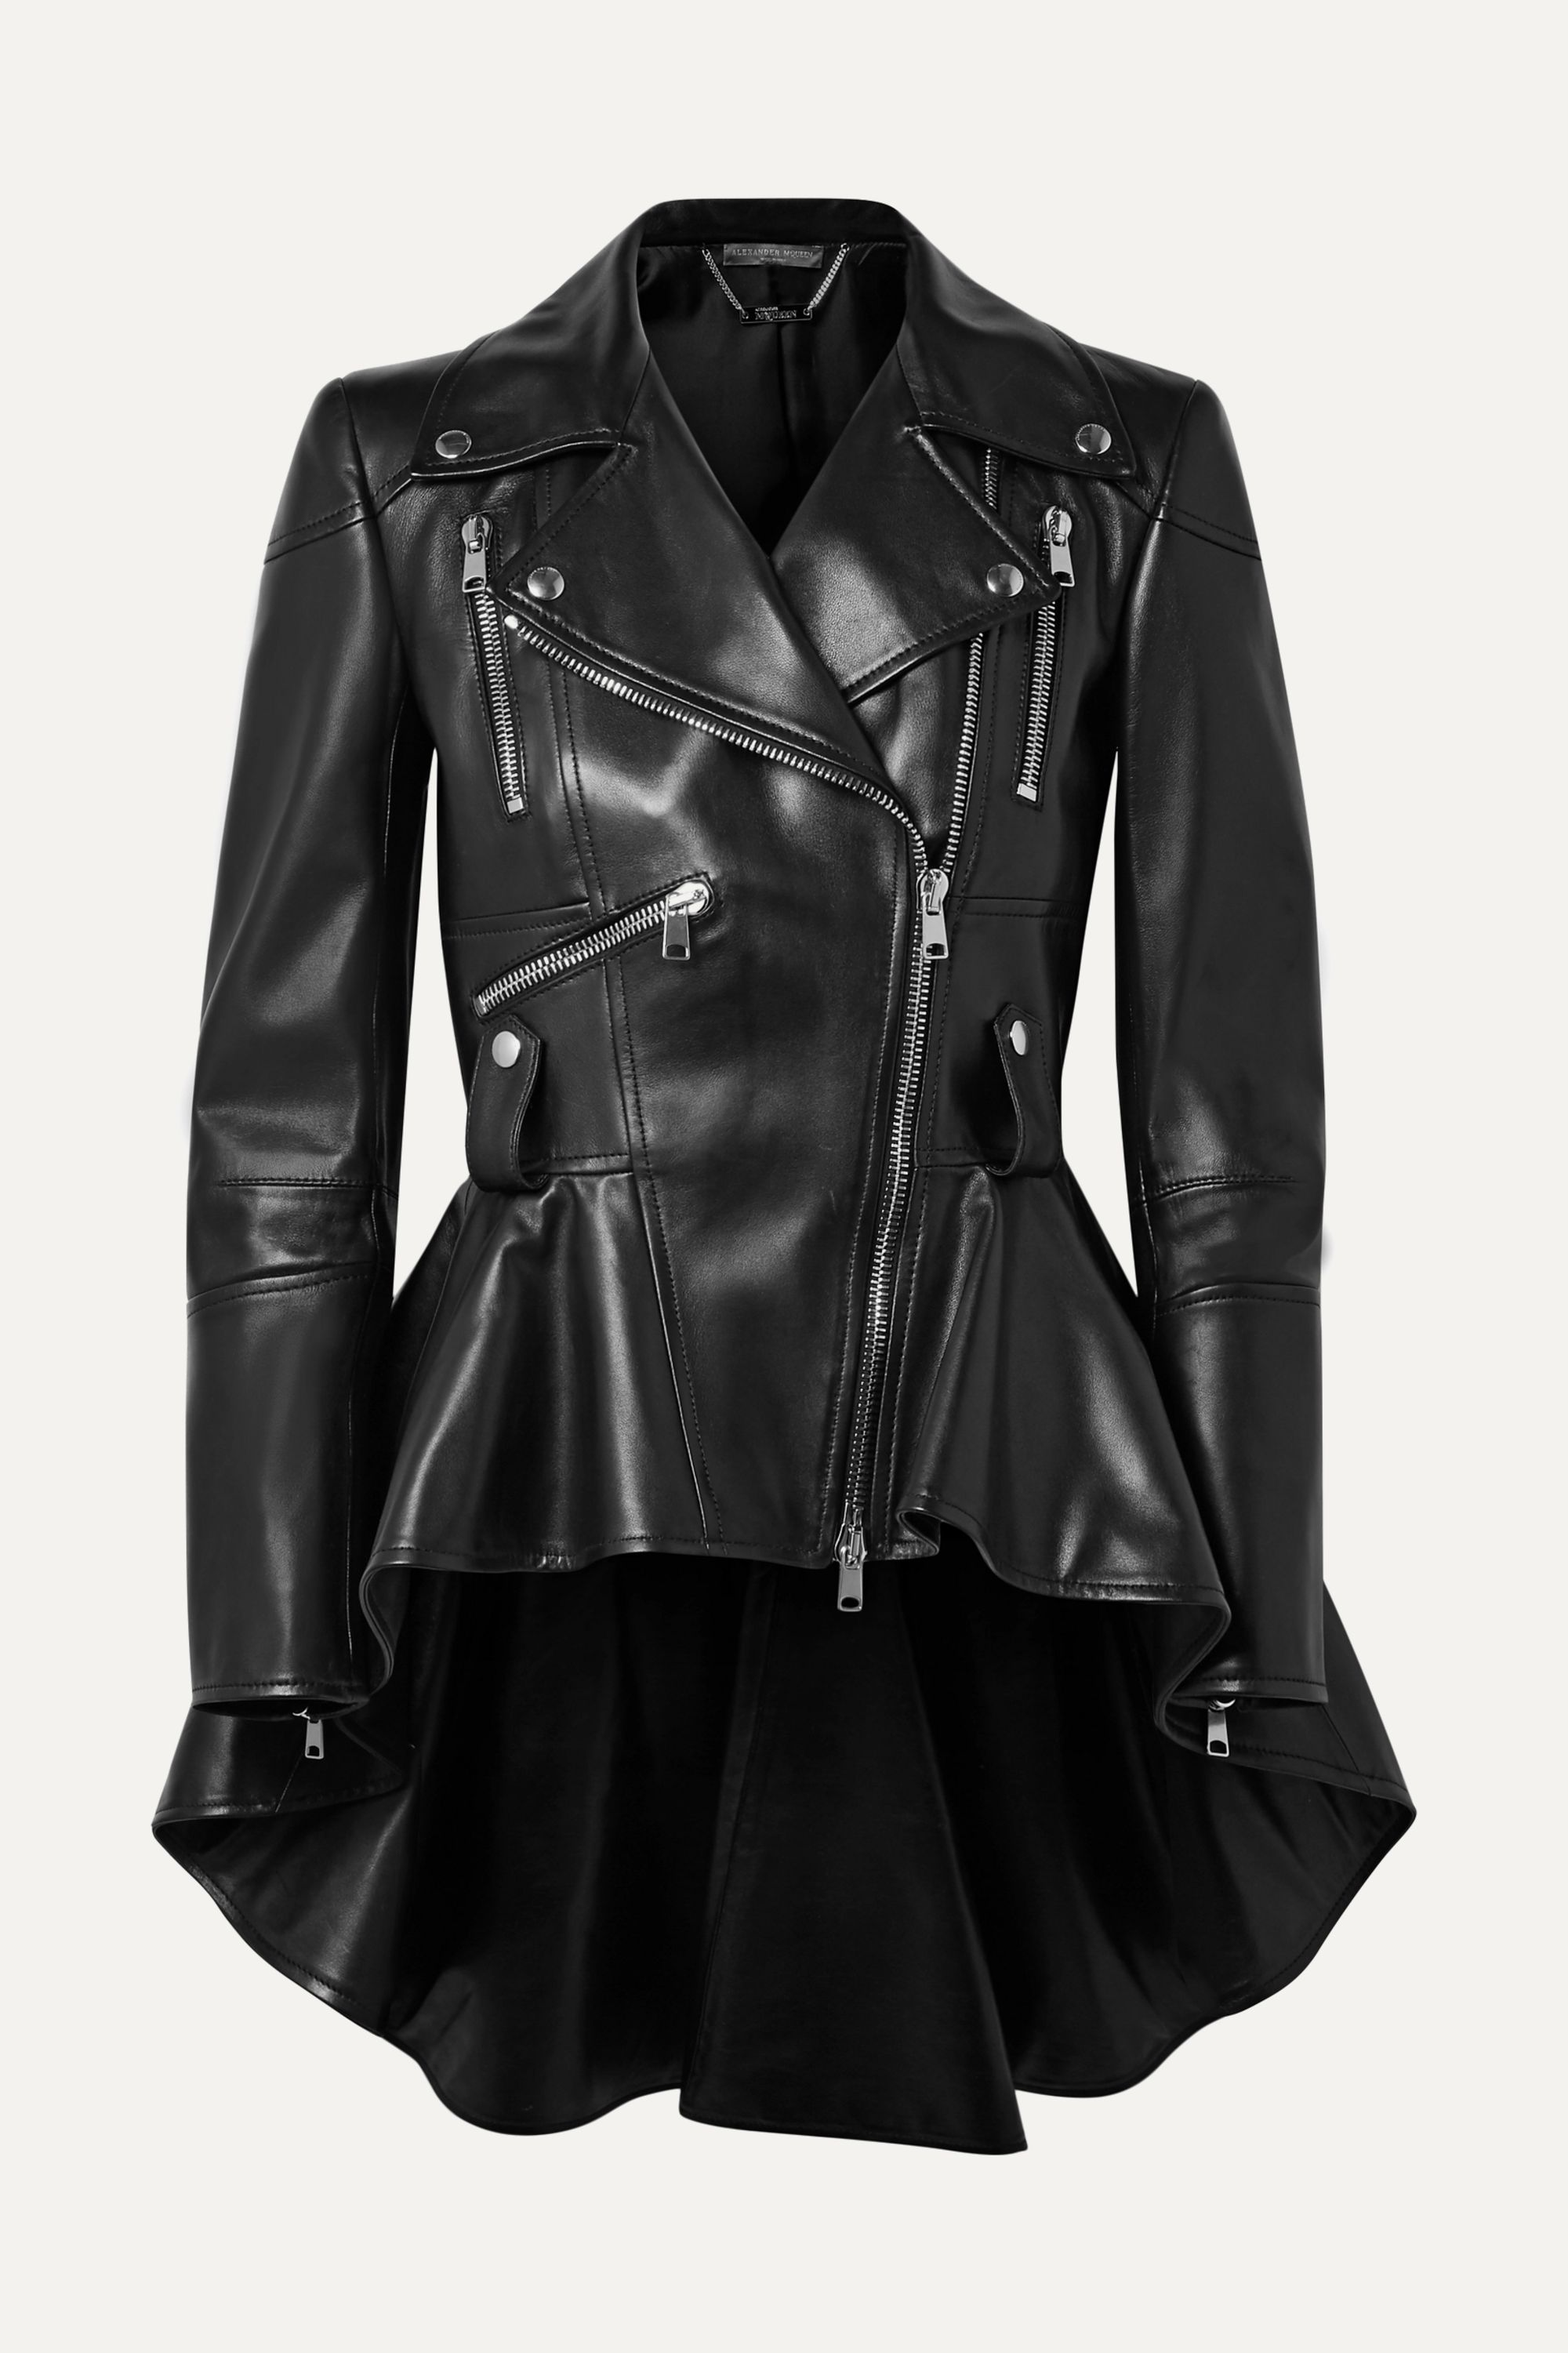 Alexander McQueen peplum biker jacket in black leather